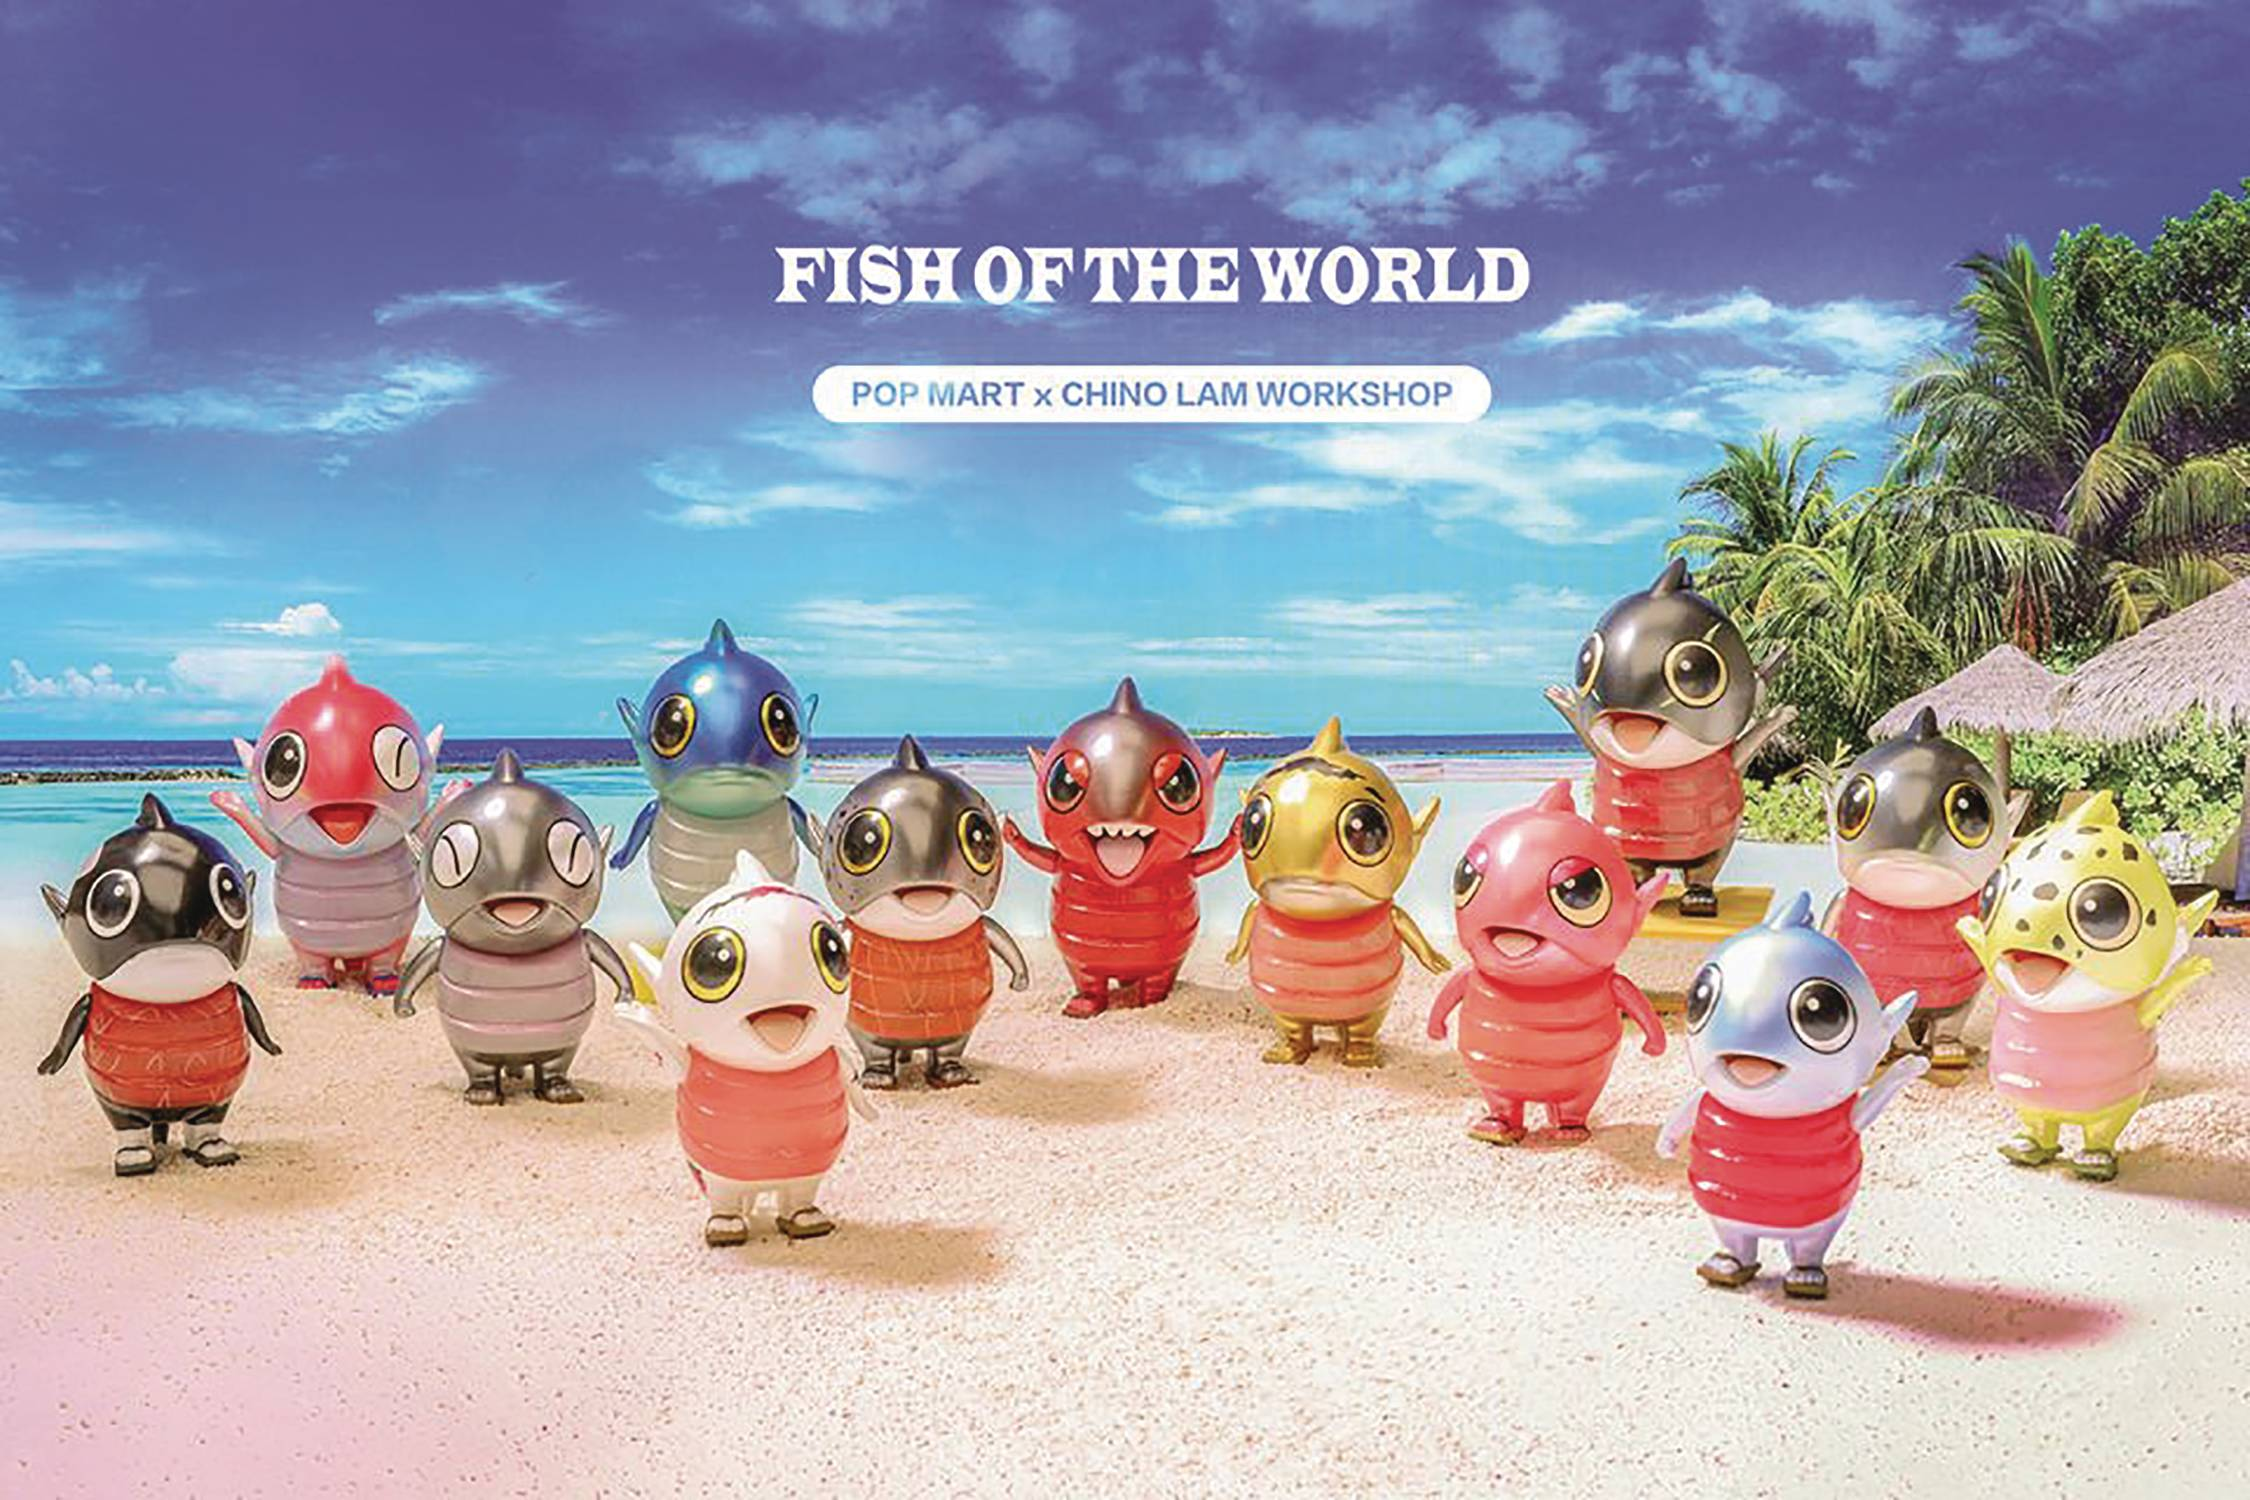 POPMART CHINO LAM FISH OF THE WORLD 12PC FIG BMB DS